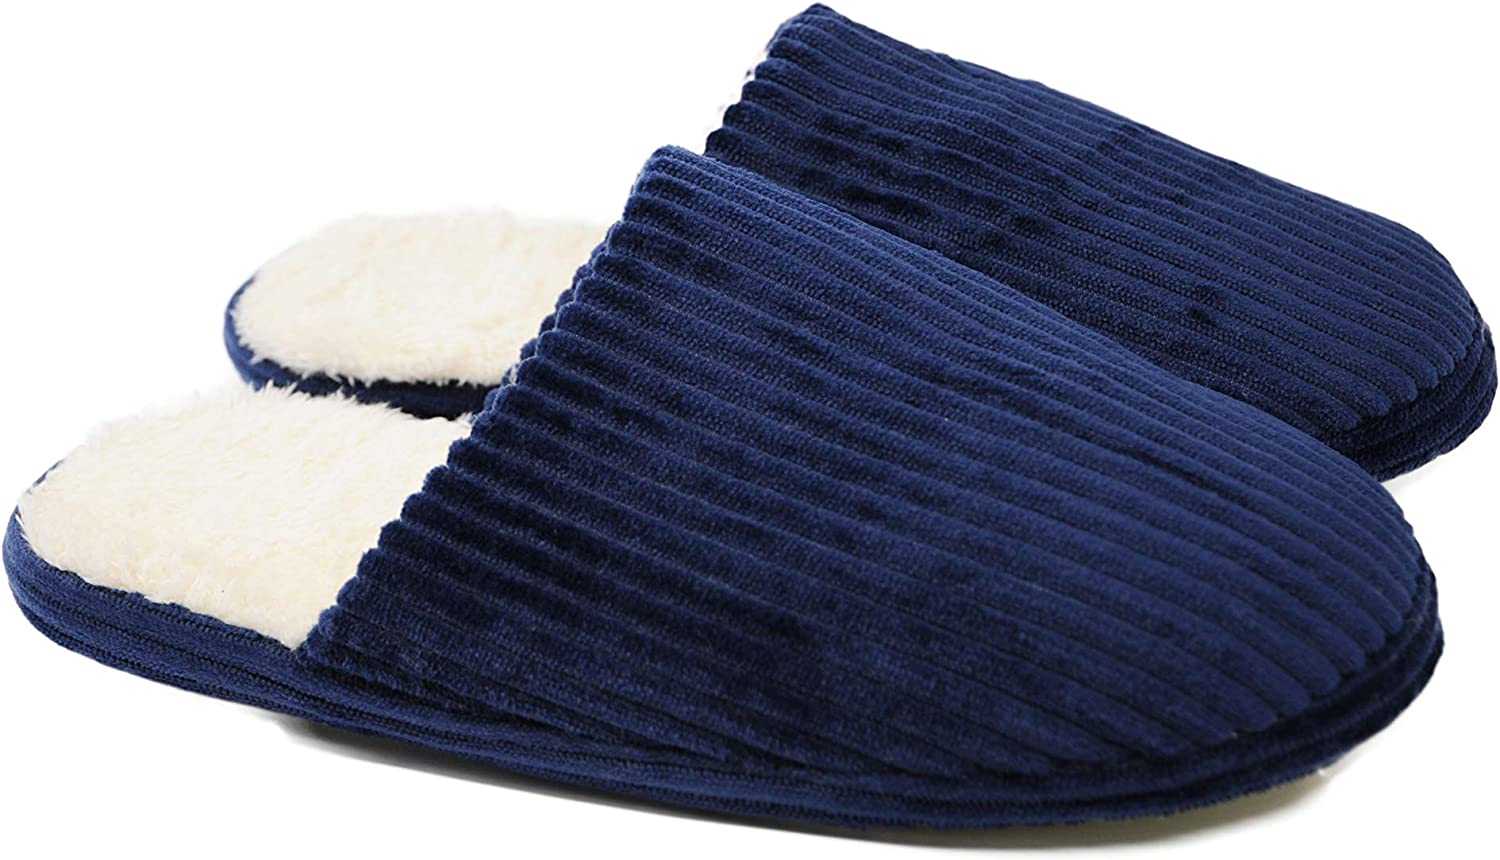 Crazy Lady Unisex Comfort Slip On Memory Foam Slippers French Terry Lining House Slippers w Anti Slip Sole